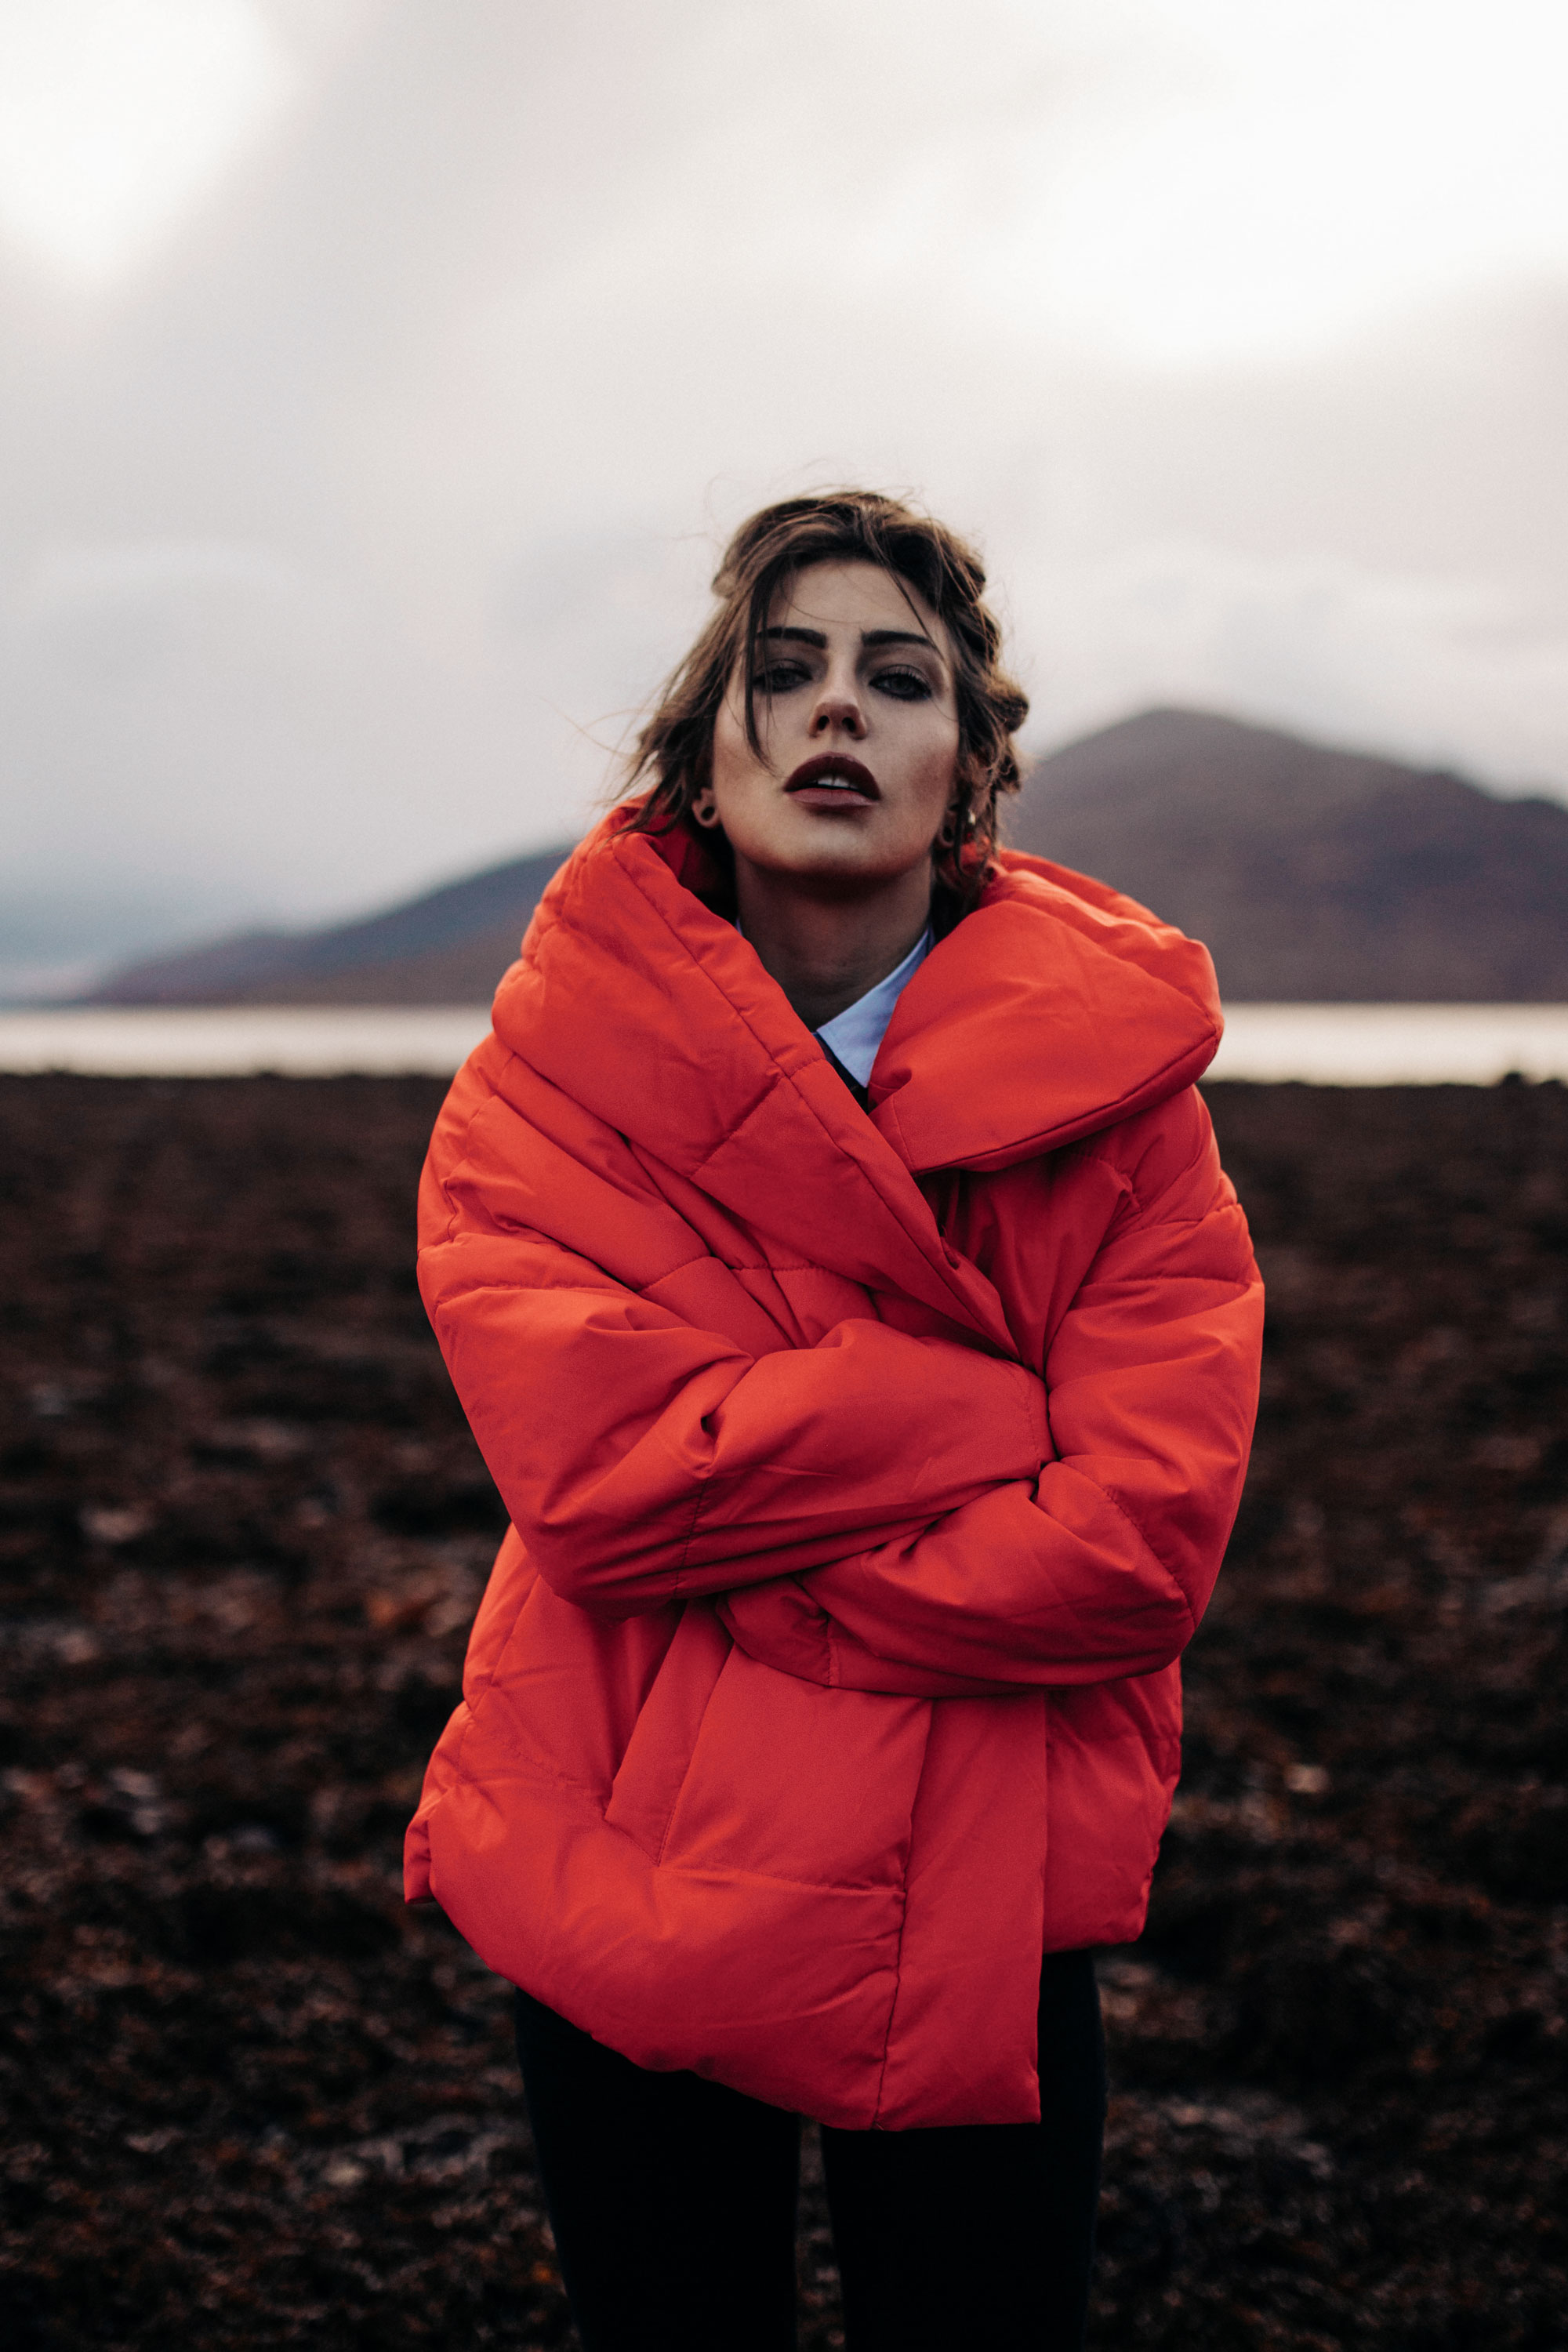 red jacket from H&M | landscape | nature | winter | scotland | fashion Editorial Shooting